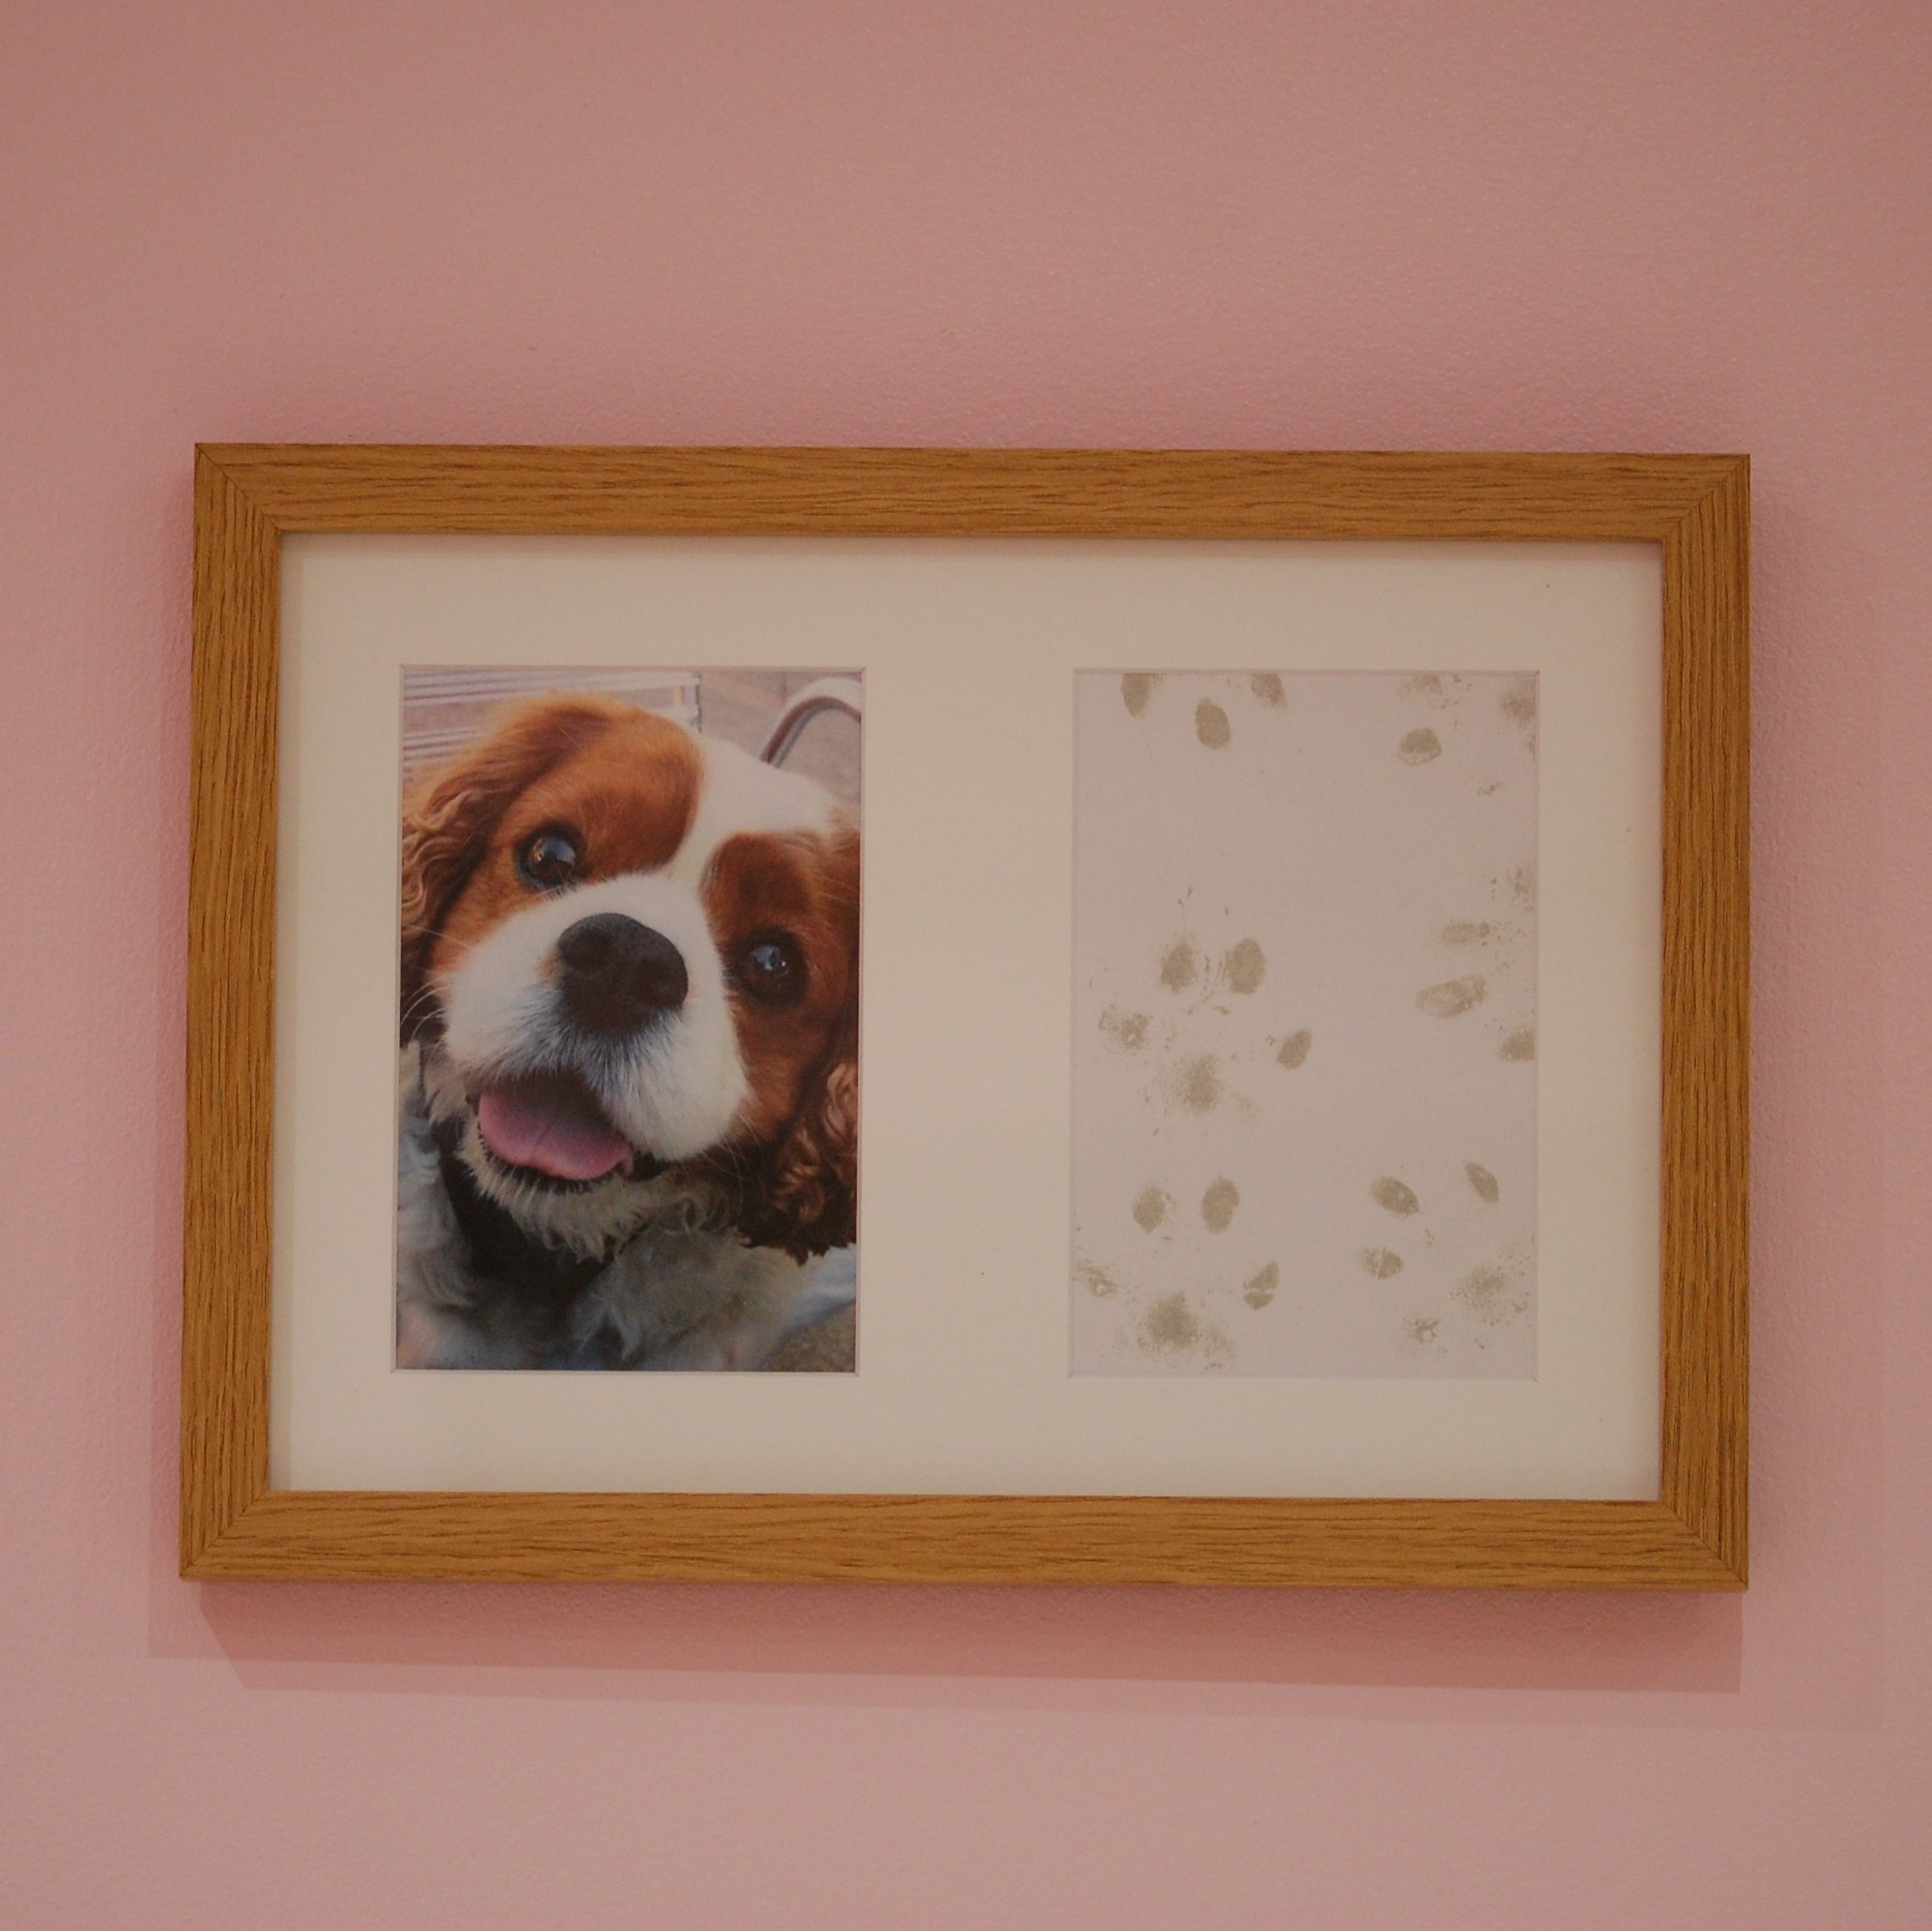 French oak effect frame with pet photo and paw prints taken with a wholesale inkless paw print kit